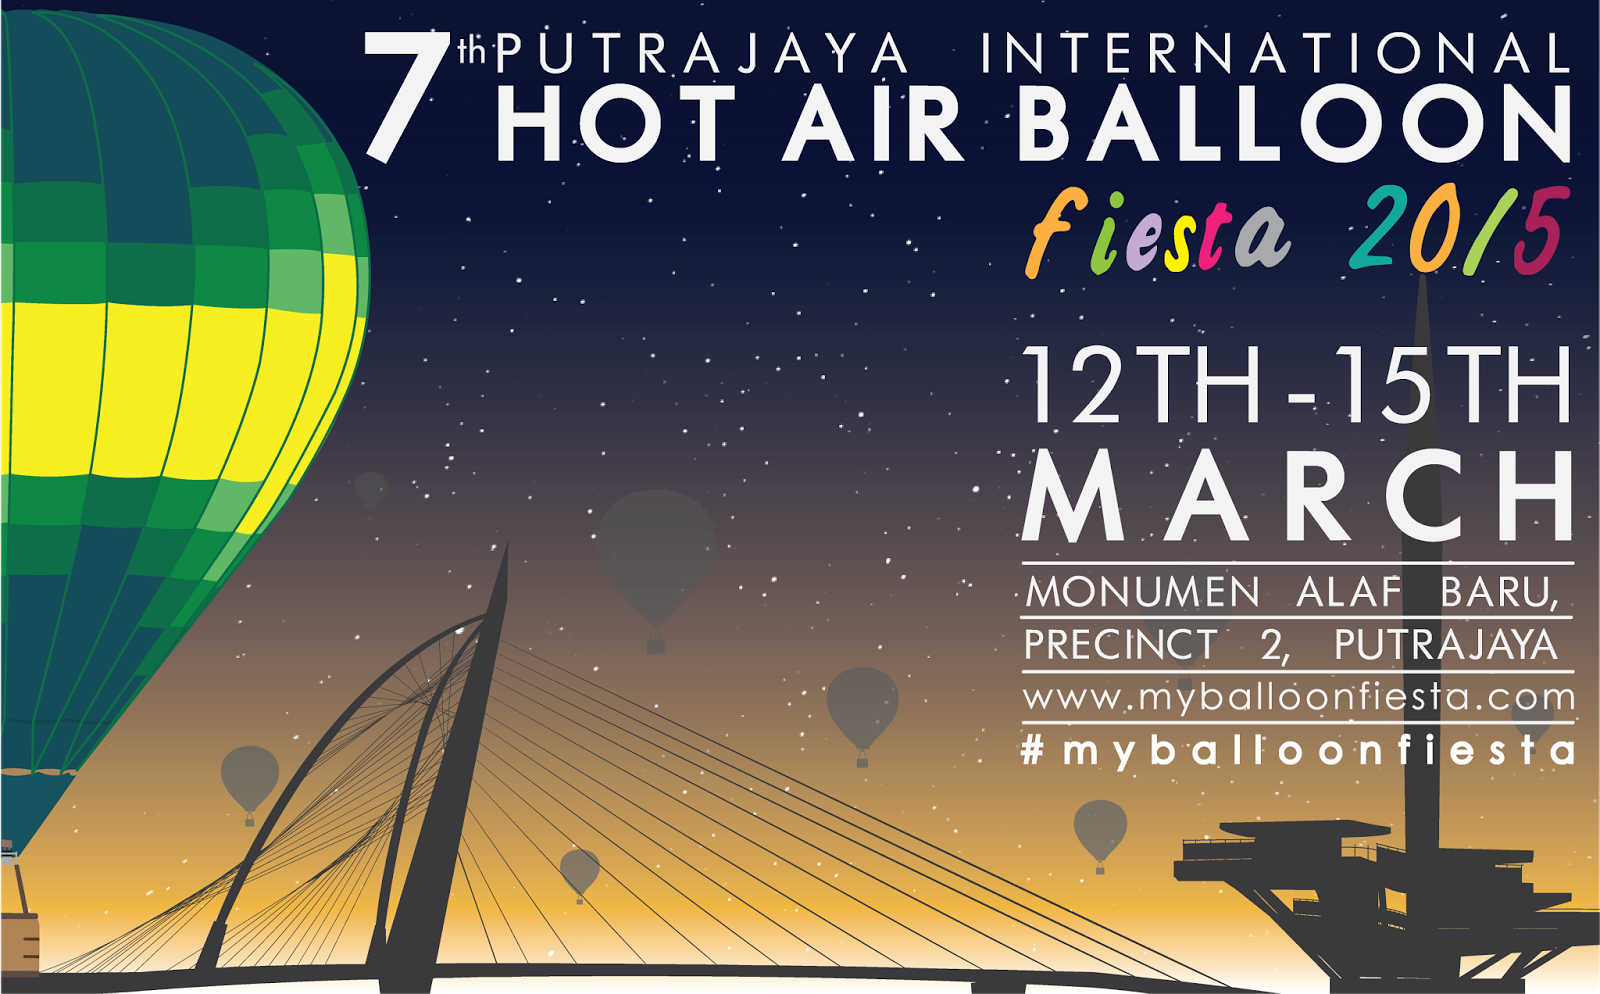 7th Putrajaya International Hot Air Balloon Fiesta 2015 : 12-15 March 2015